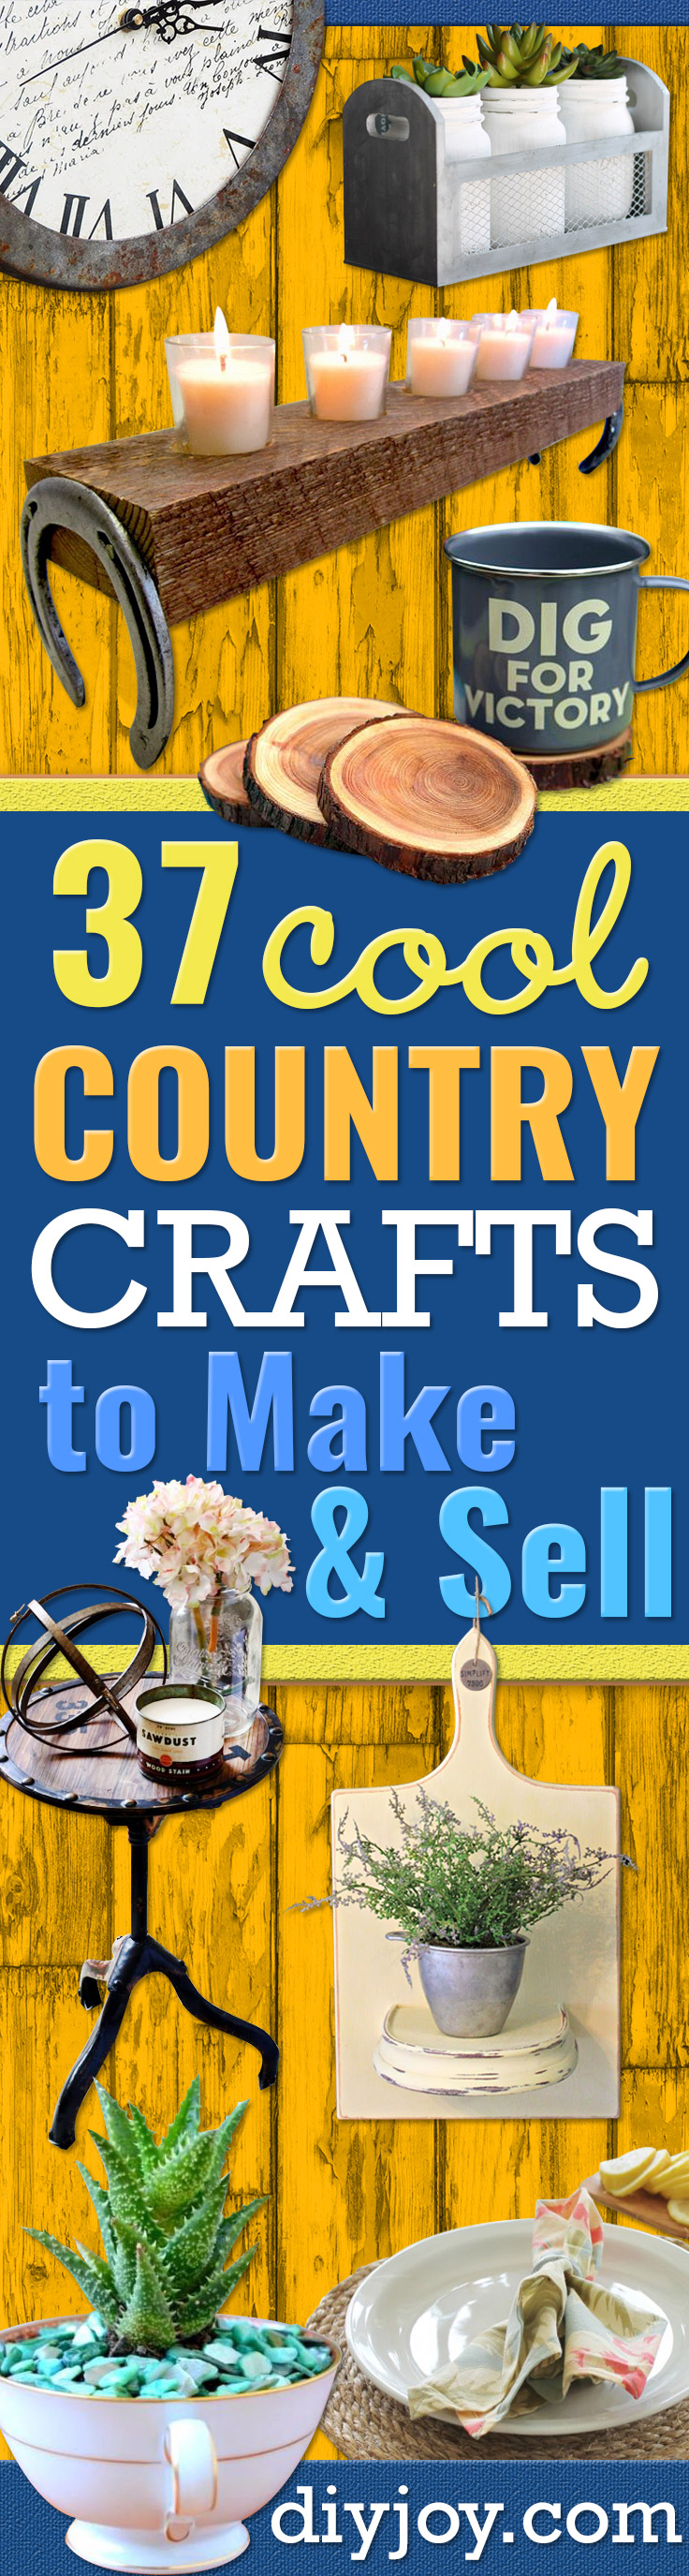 Craft Ideas To Sell On Etsy